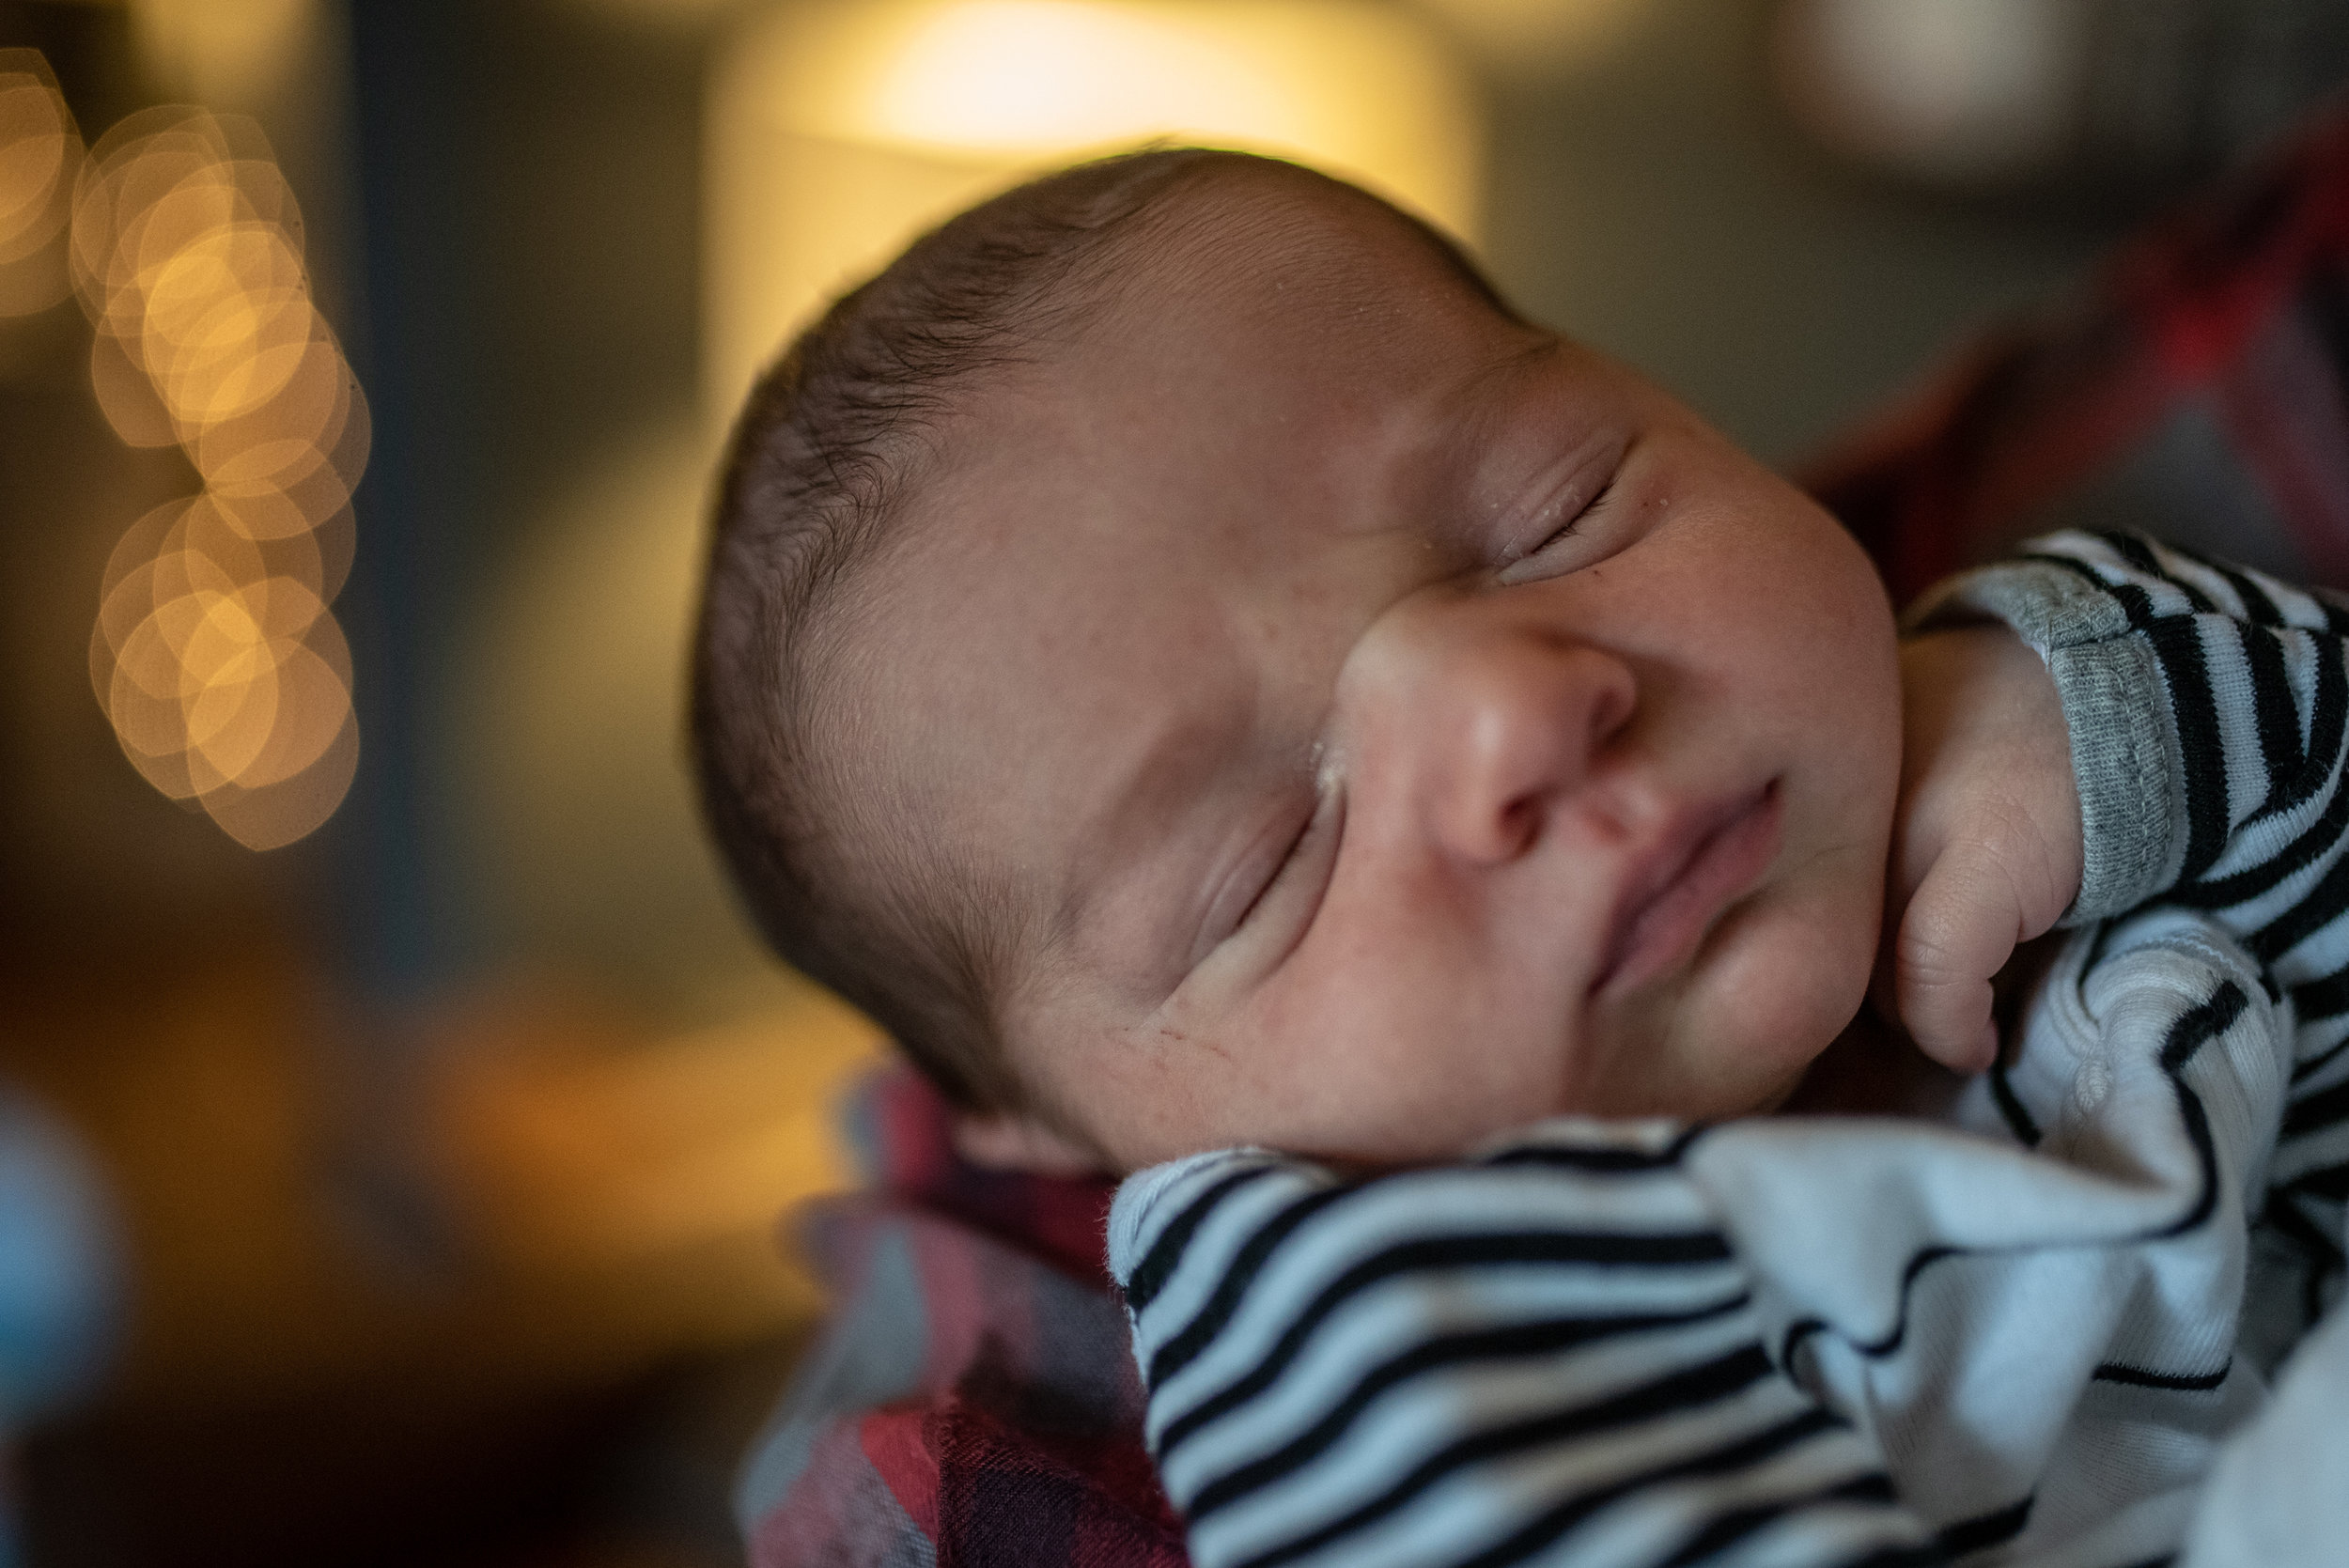 Newborn baby sleeping with twinkling lights in the background